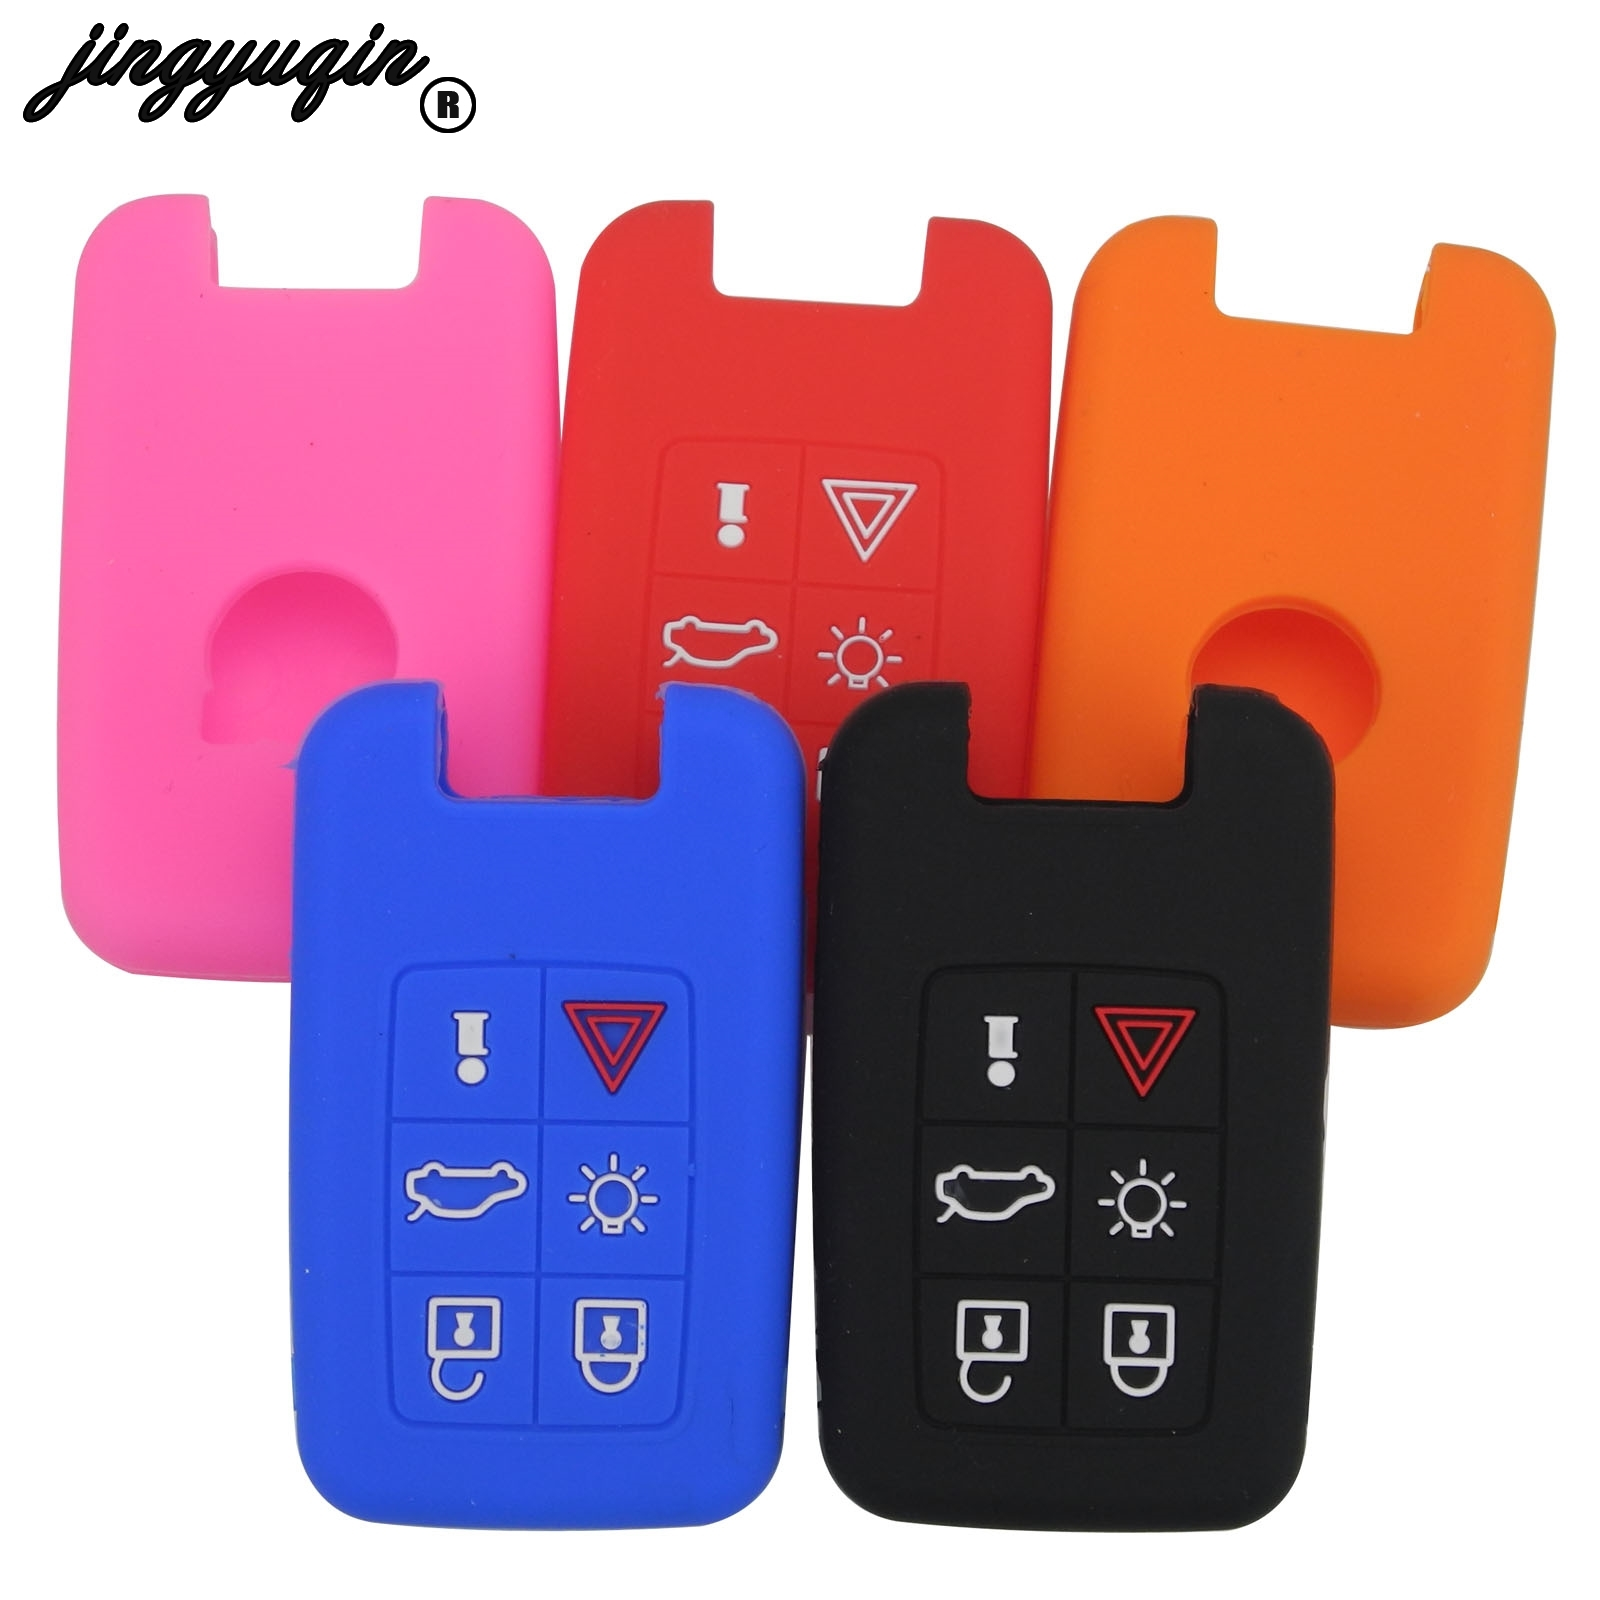 Jingyuqin 6 Button Silicone Car Key Case Smart Remote Keyless Fob Protect Cover For Volvo V40 S80 XC60 S60L V60 XC90 V70 S40